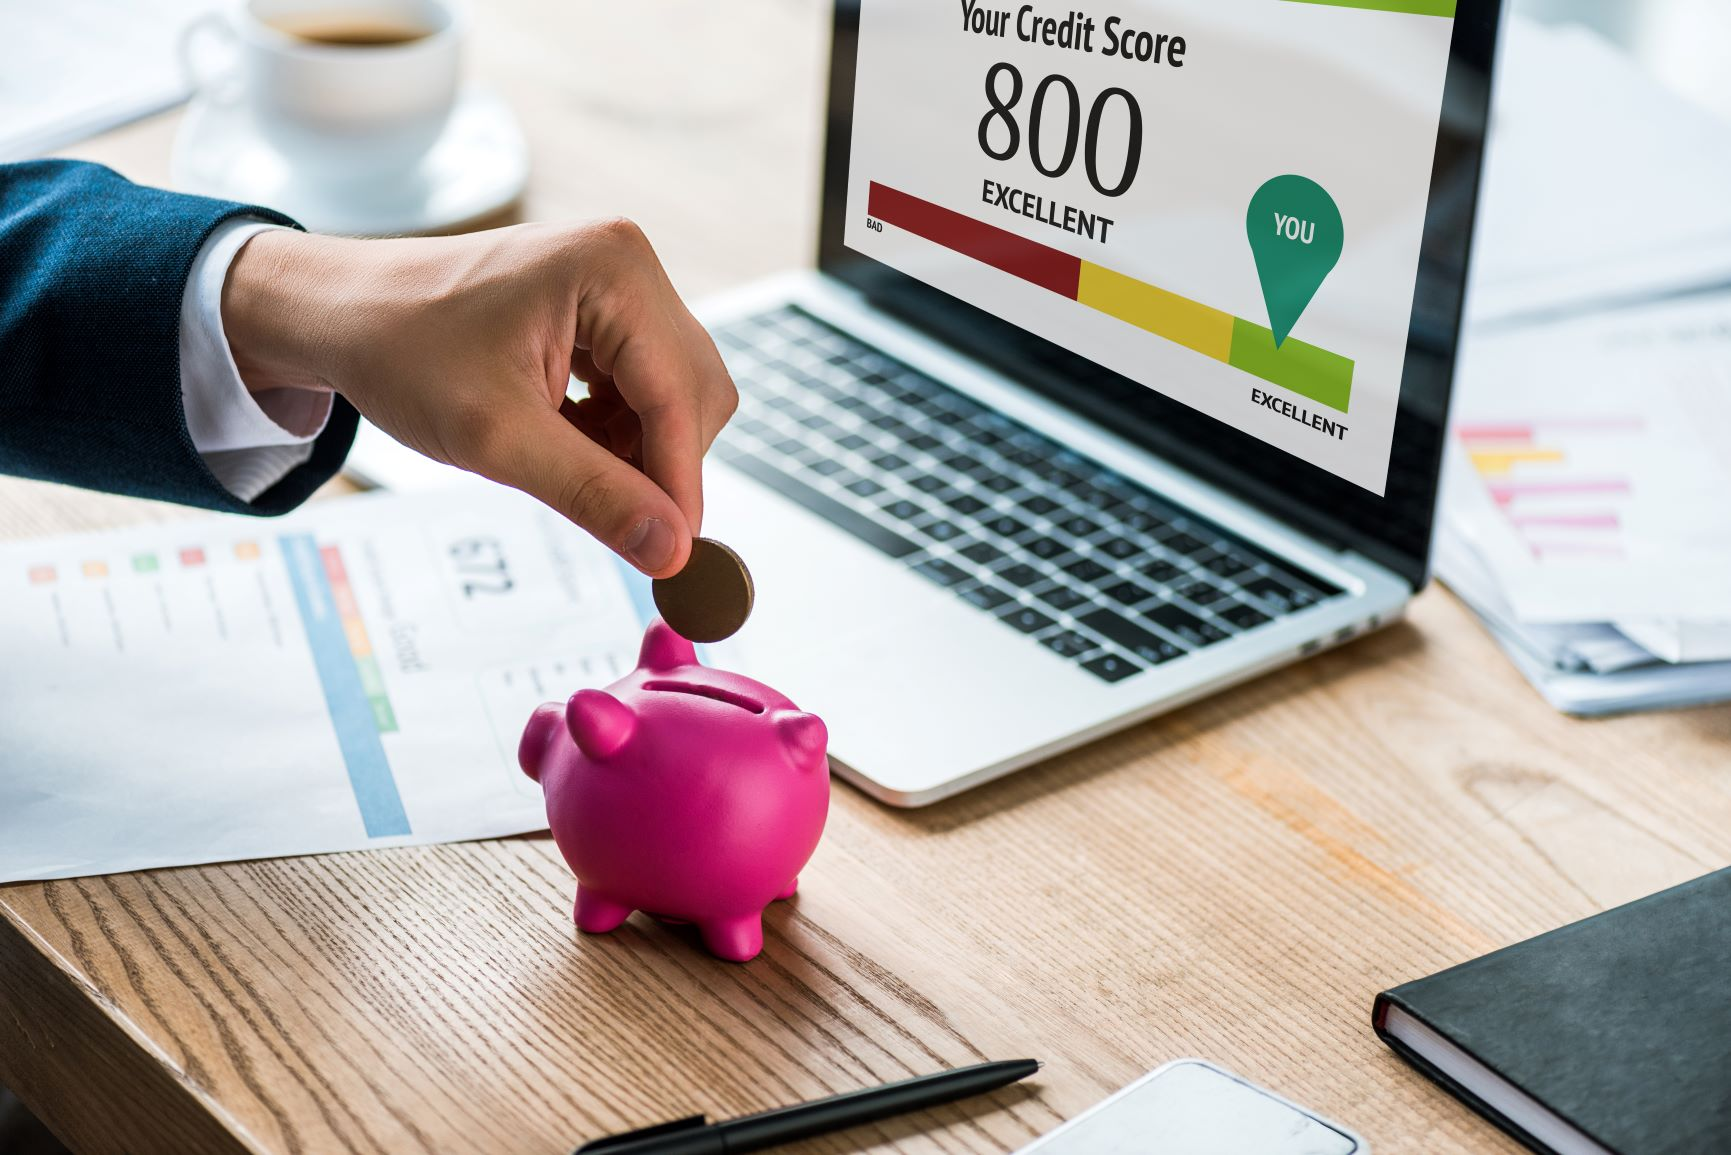 Piggy bank in front of credit score computer